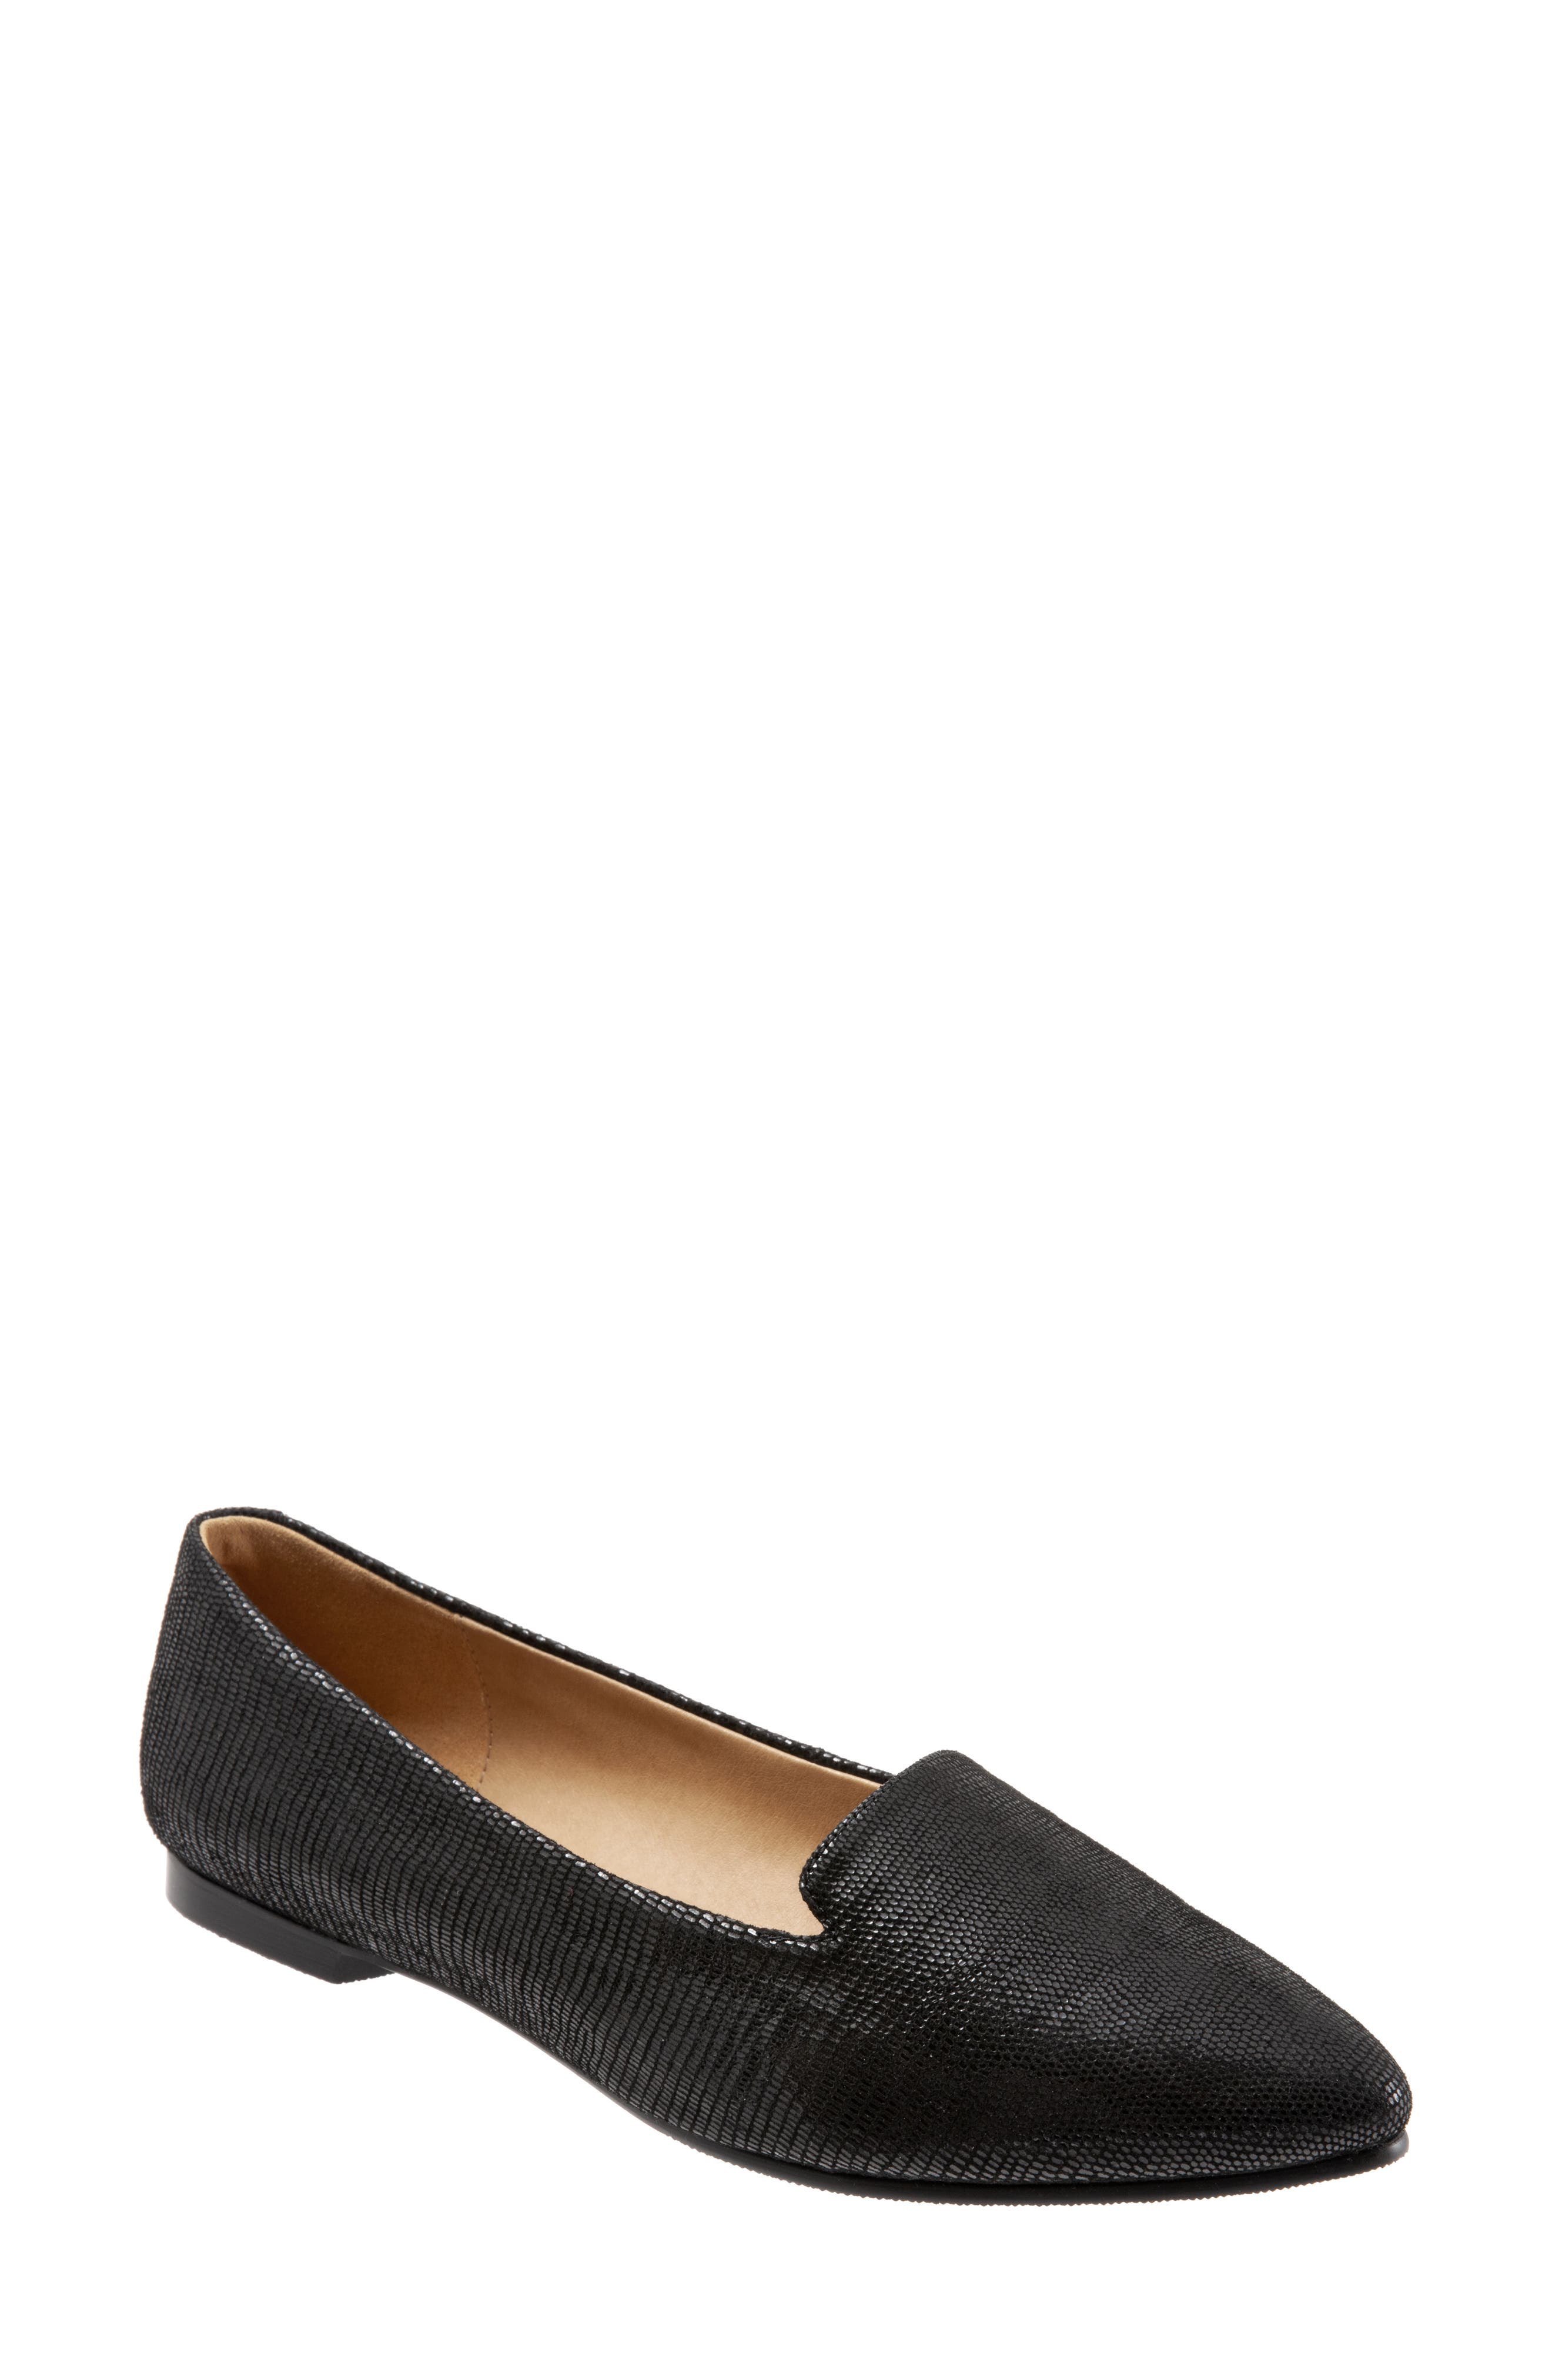 TROTTERS Harlowe Pointy Toe Loafer, Main, color, DARK BLACK LEATHER